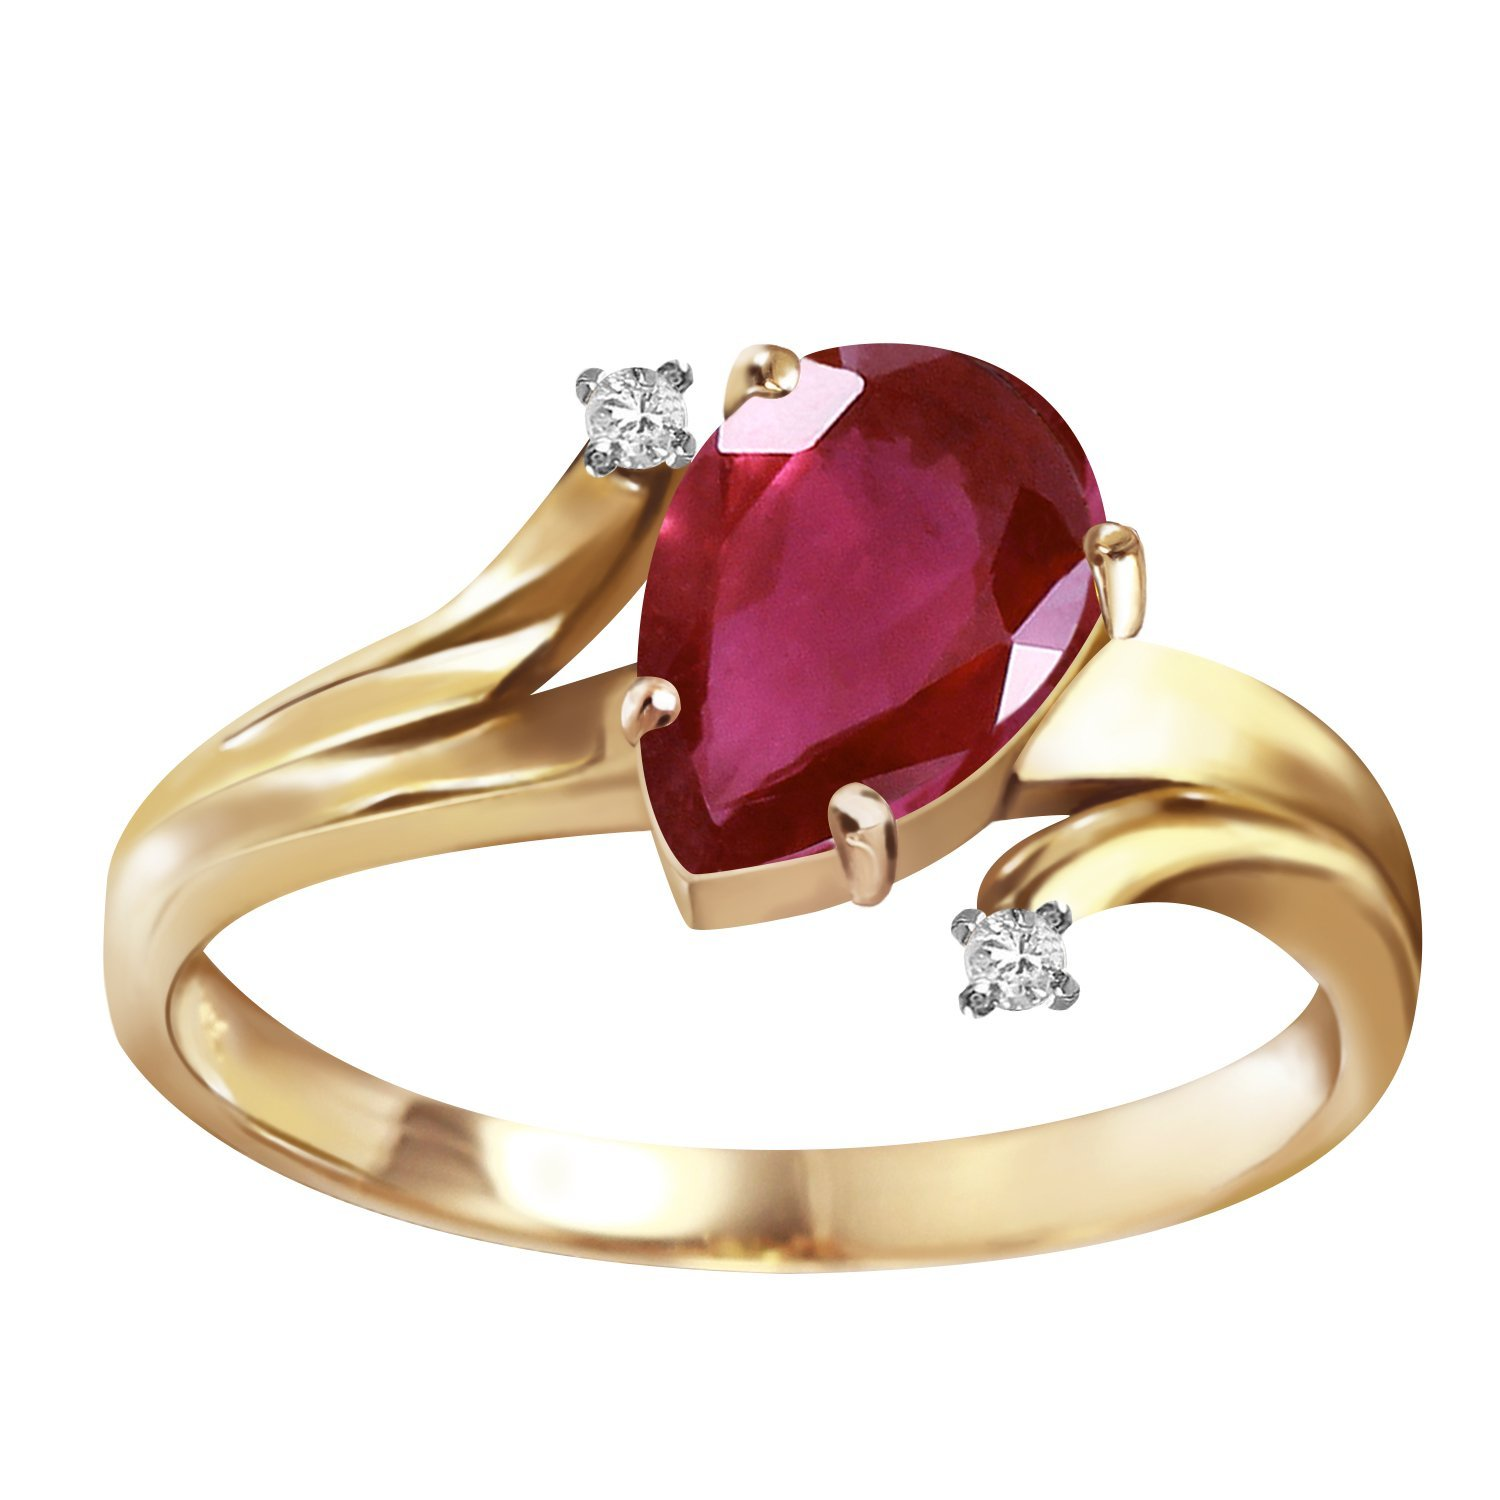 1.51 Carat 14k Solid Gold Ring with Genuine Diamonds and Natural Pear-shaped Ruby - Size 7.5